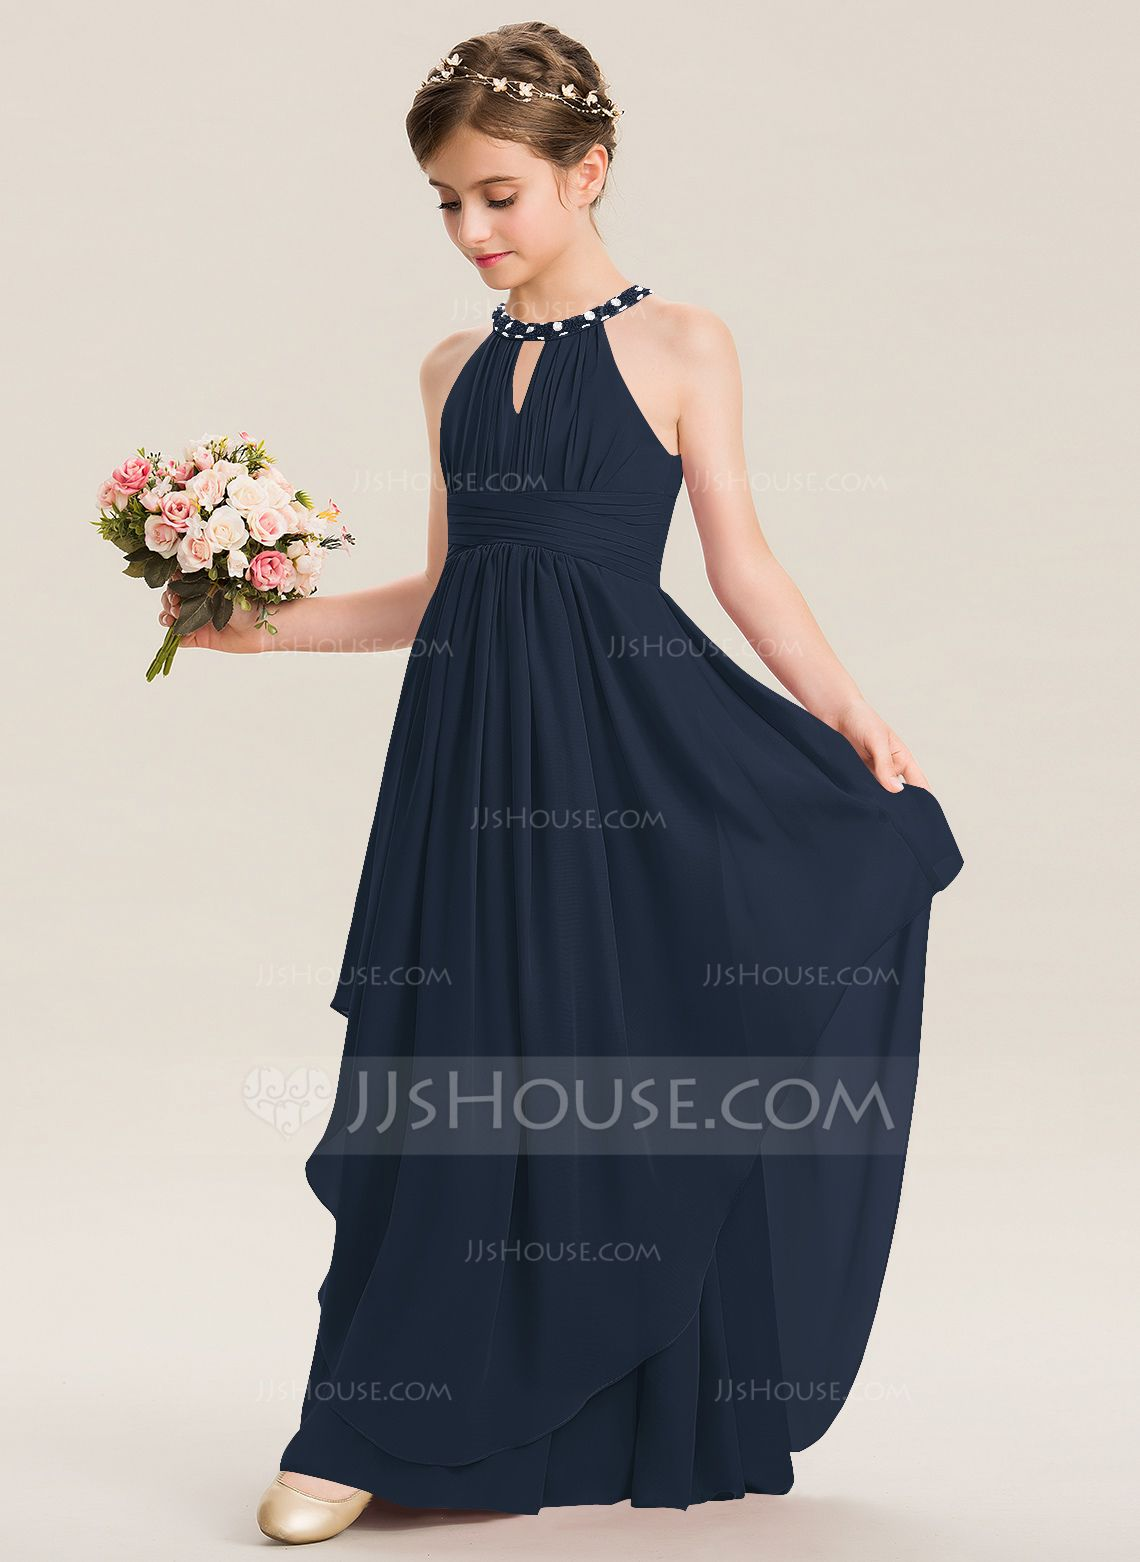 e1eba94294d A-Line Scoop Neck Floor-Length Chiffon Junior Bridesmaid Dress With Ruffle  Beading (. Visit. Saved by. JJ s House®. 2